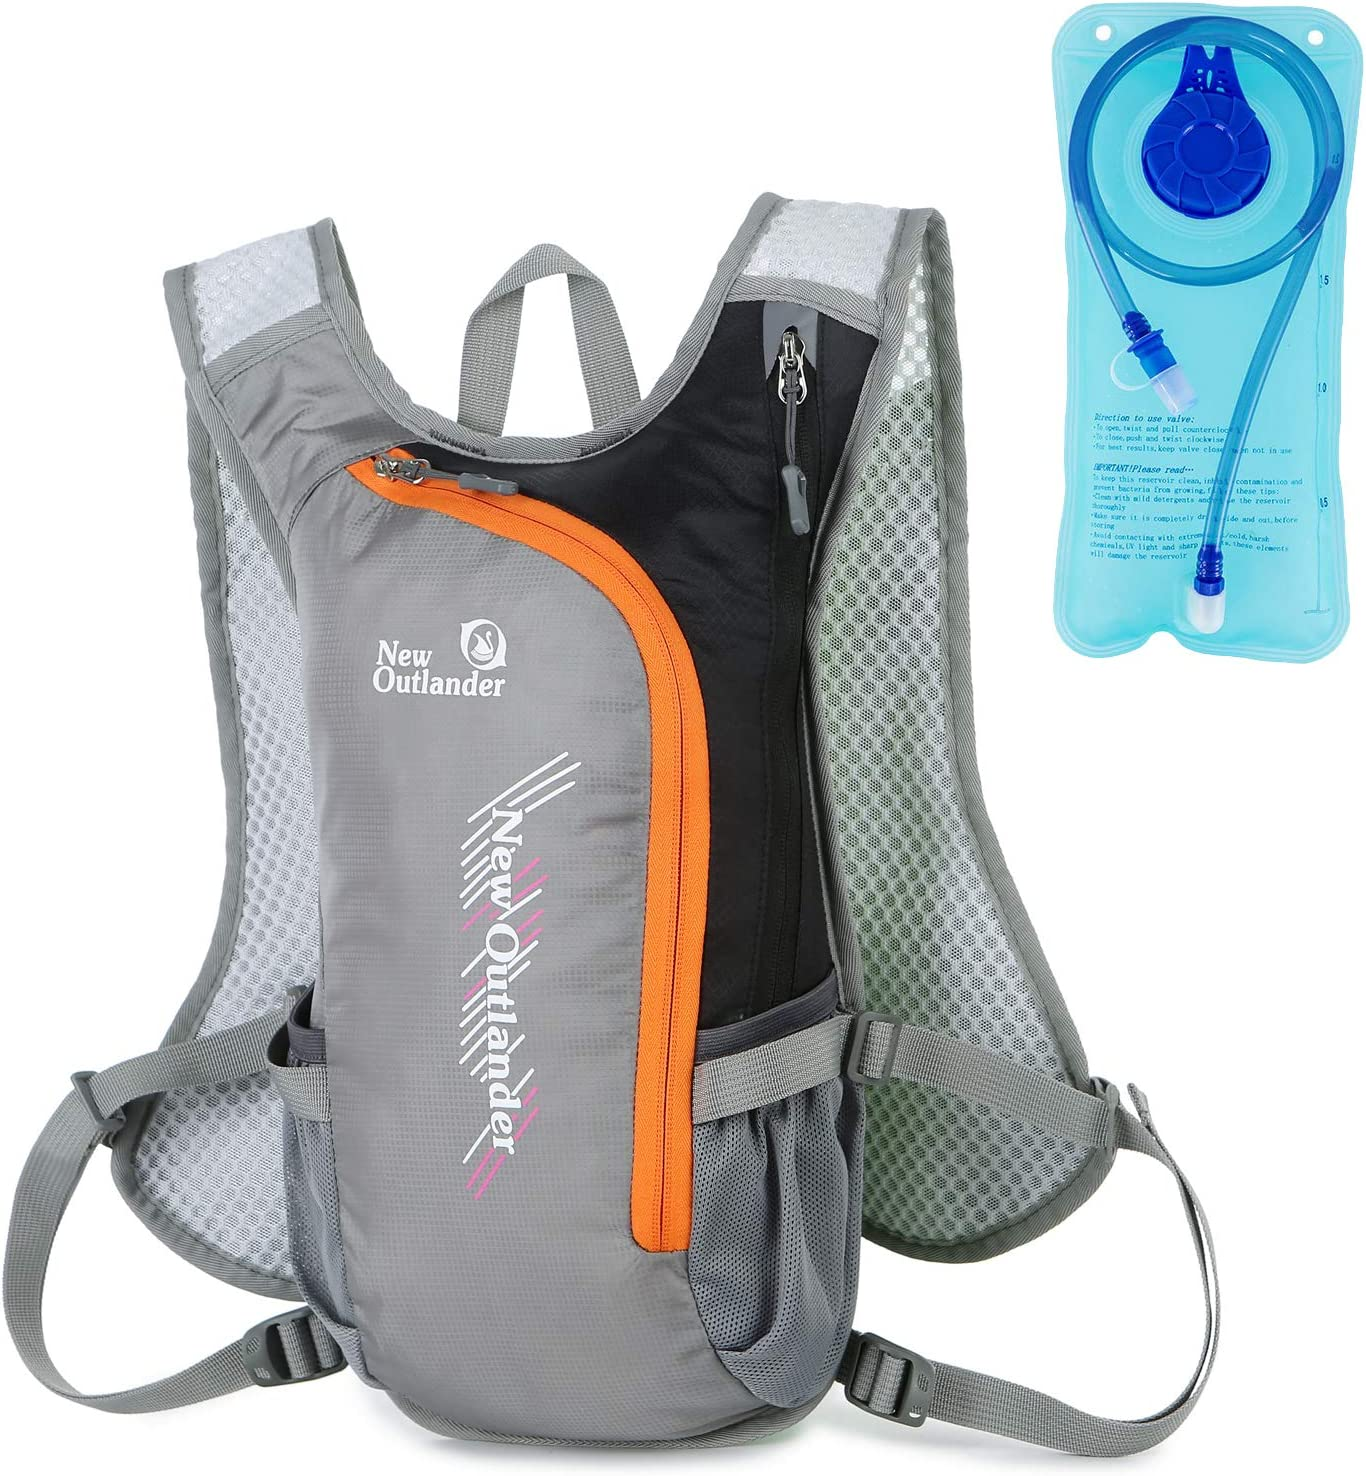 Complete Free Shipping Beacon Pet Hydration Backpack with Bladd Bladder 2L Indianapolis Mall Water